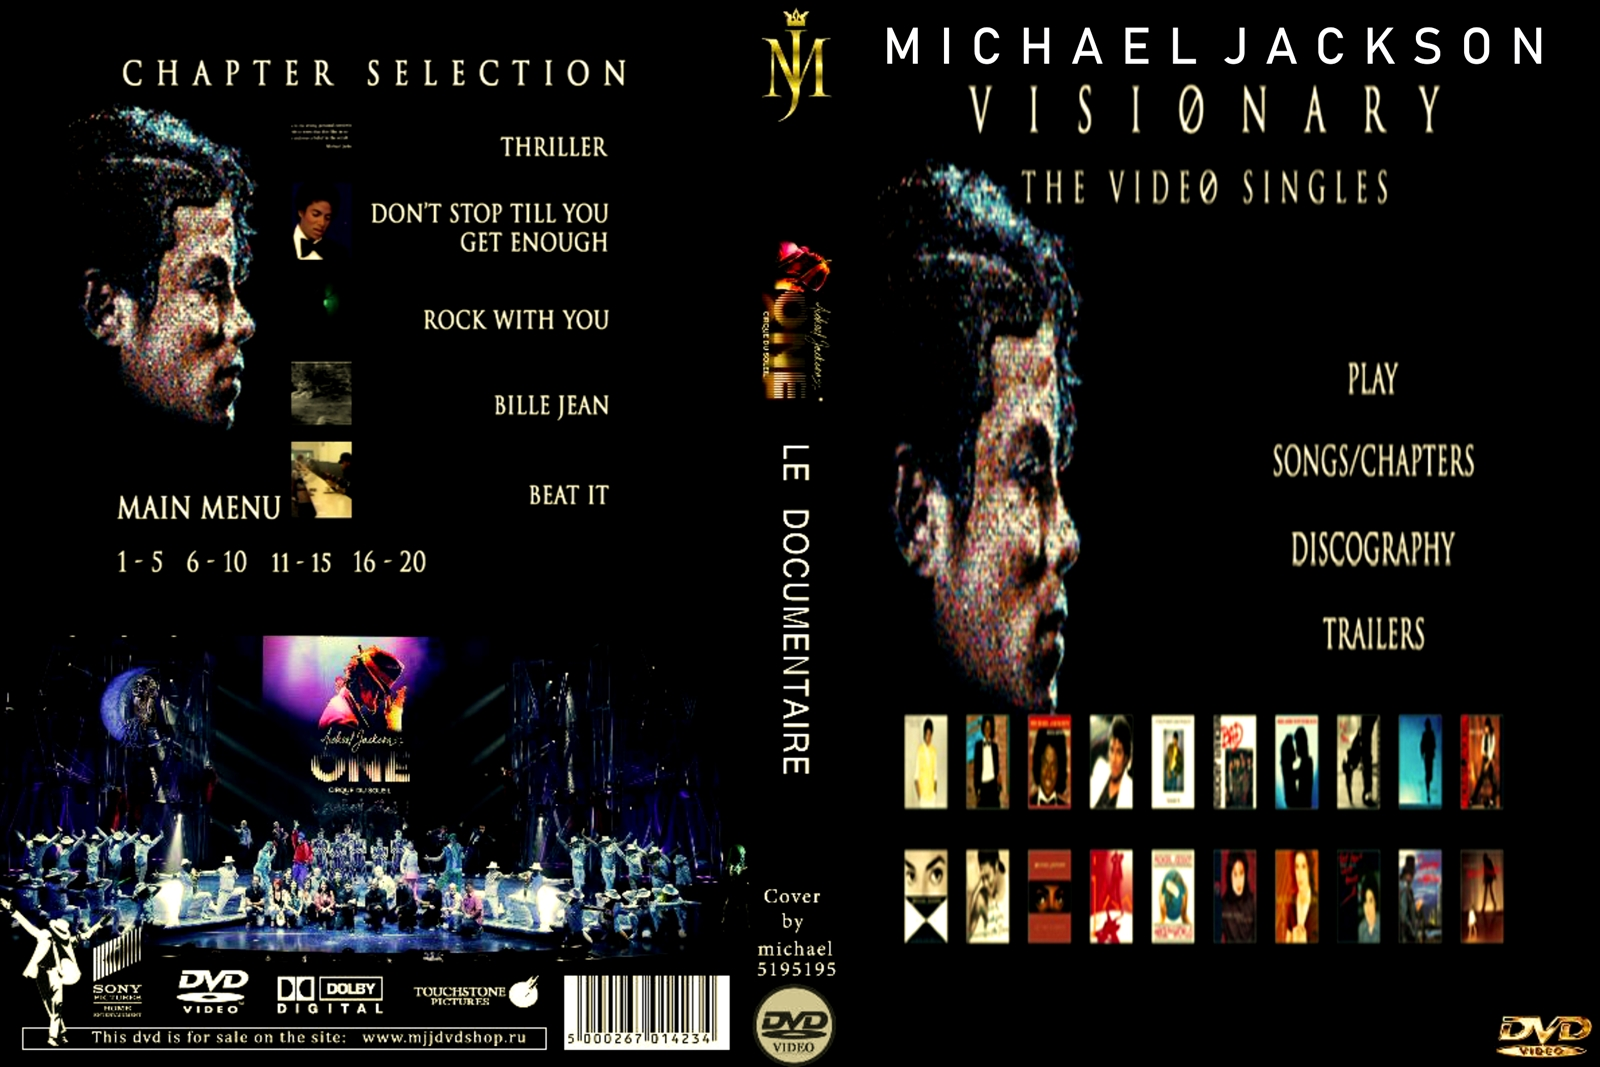 Visionary the video singles